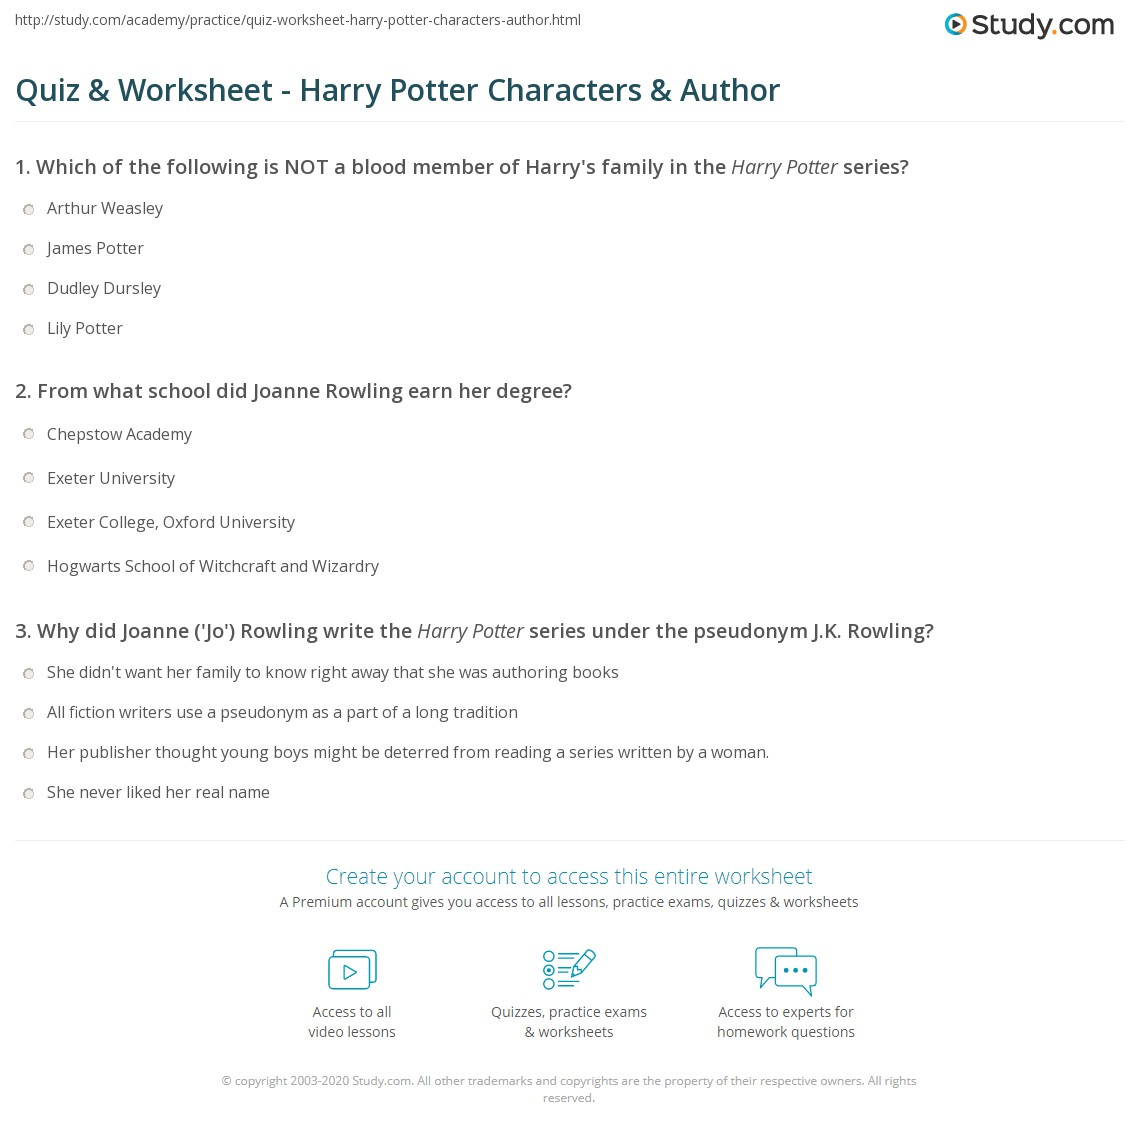 quiz worksheet harry potter characters author com print harry potter characters author facts worksheet